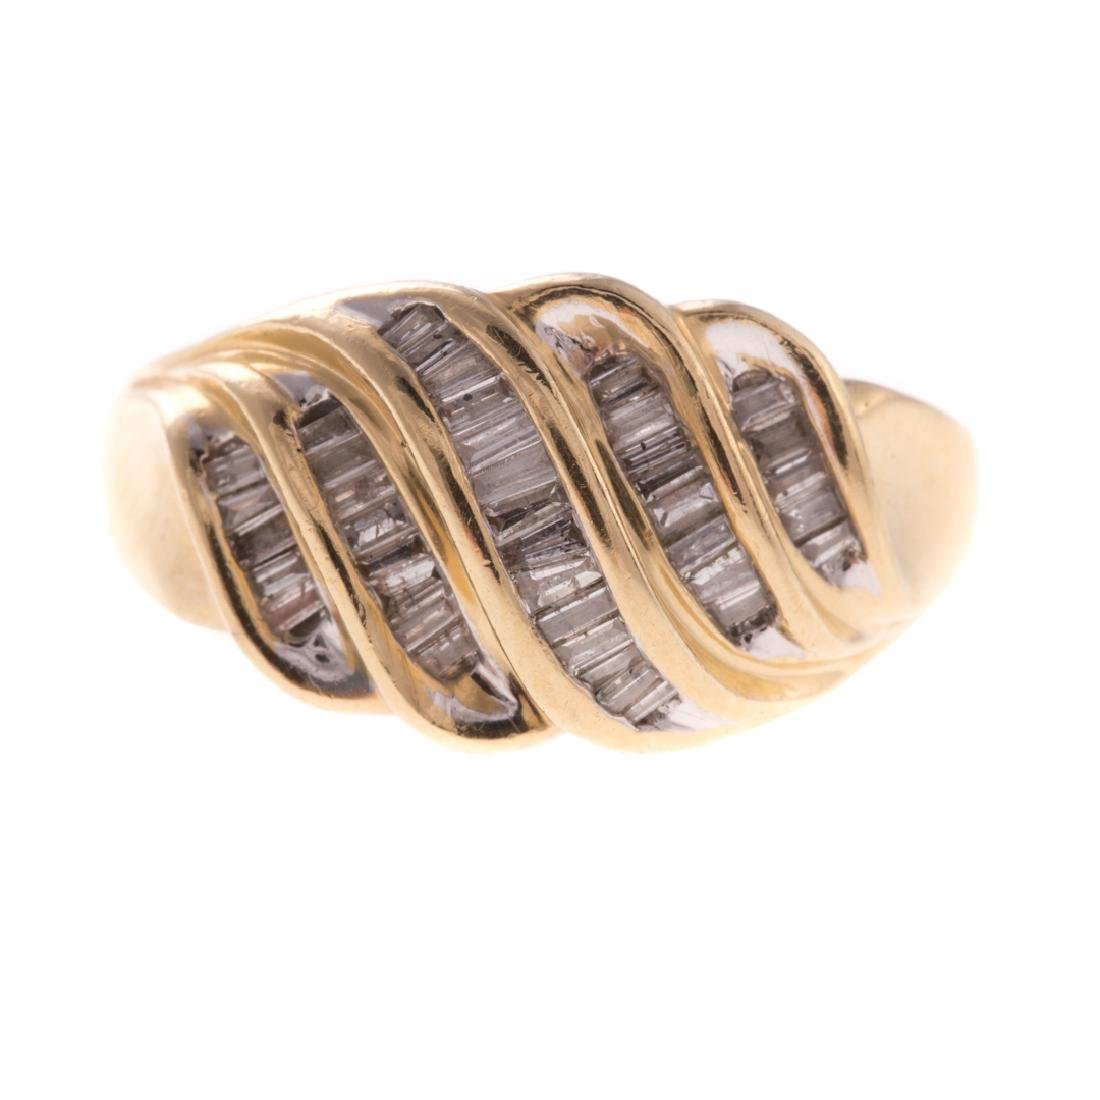 A Lady's Diamond Baguette Ring in 14K Gold